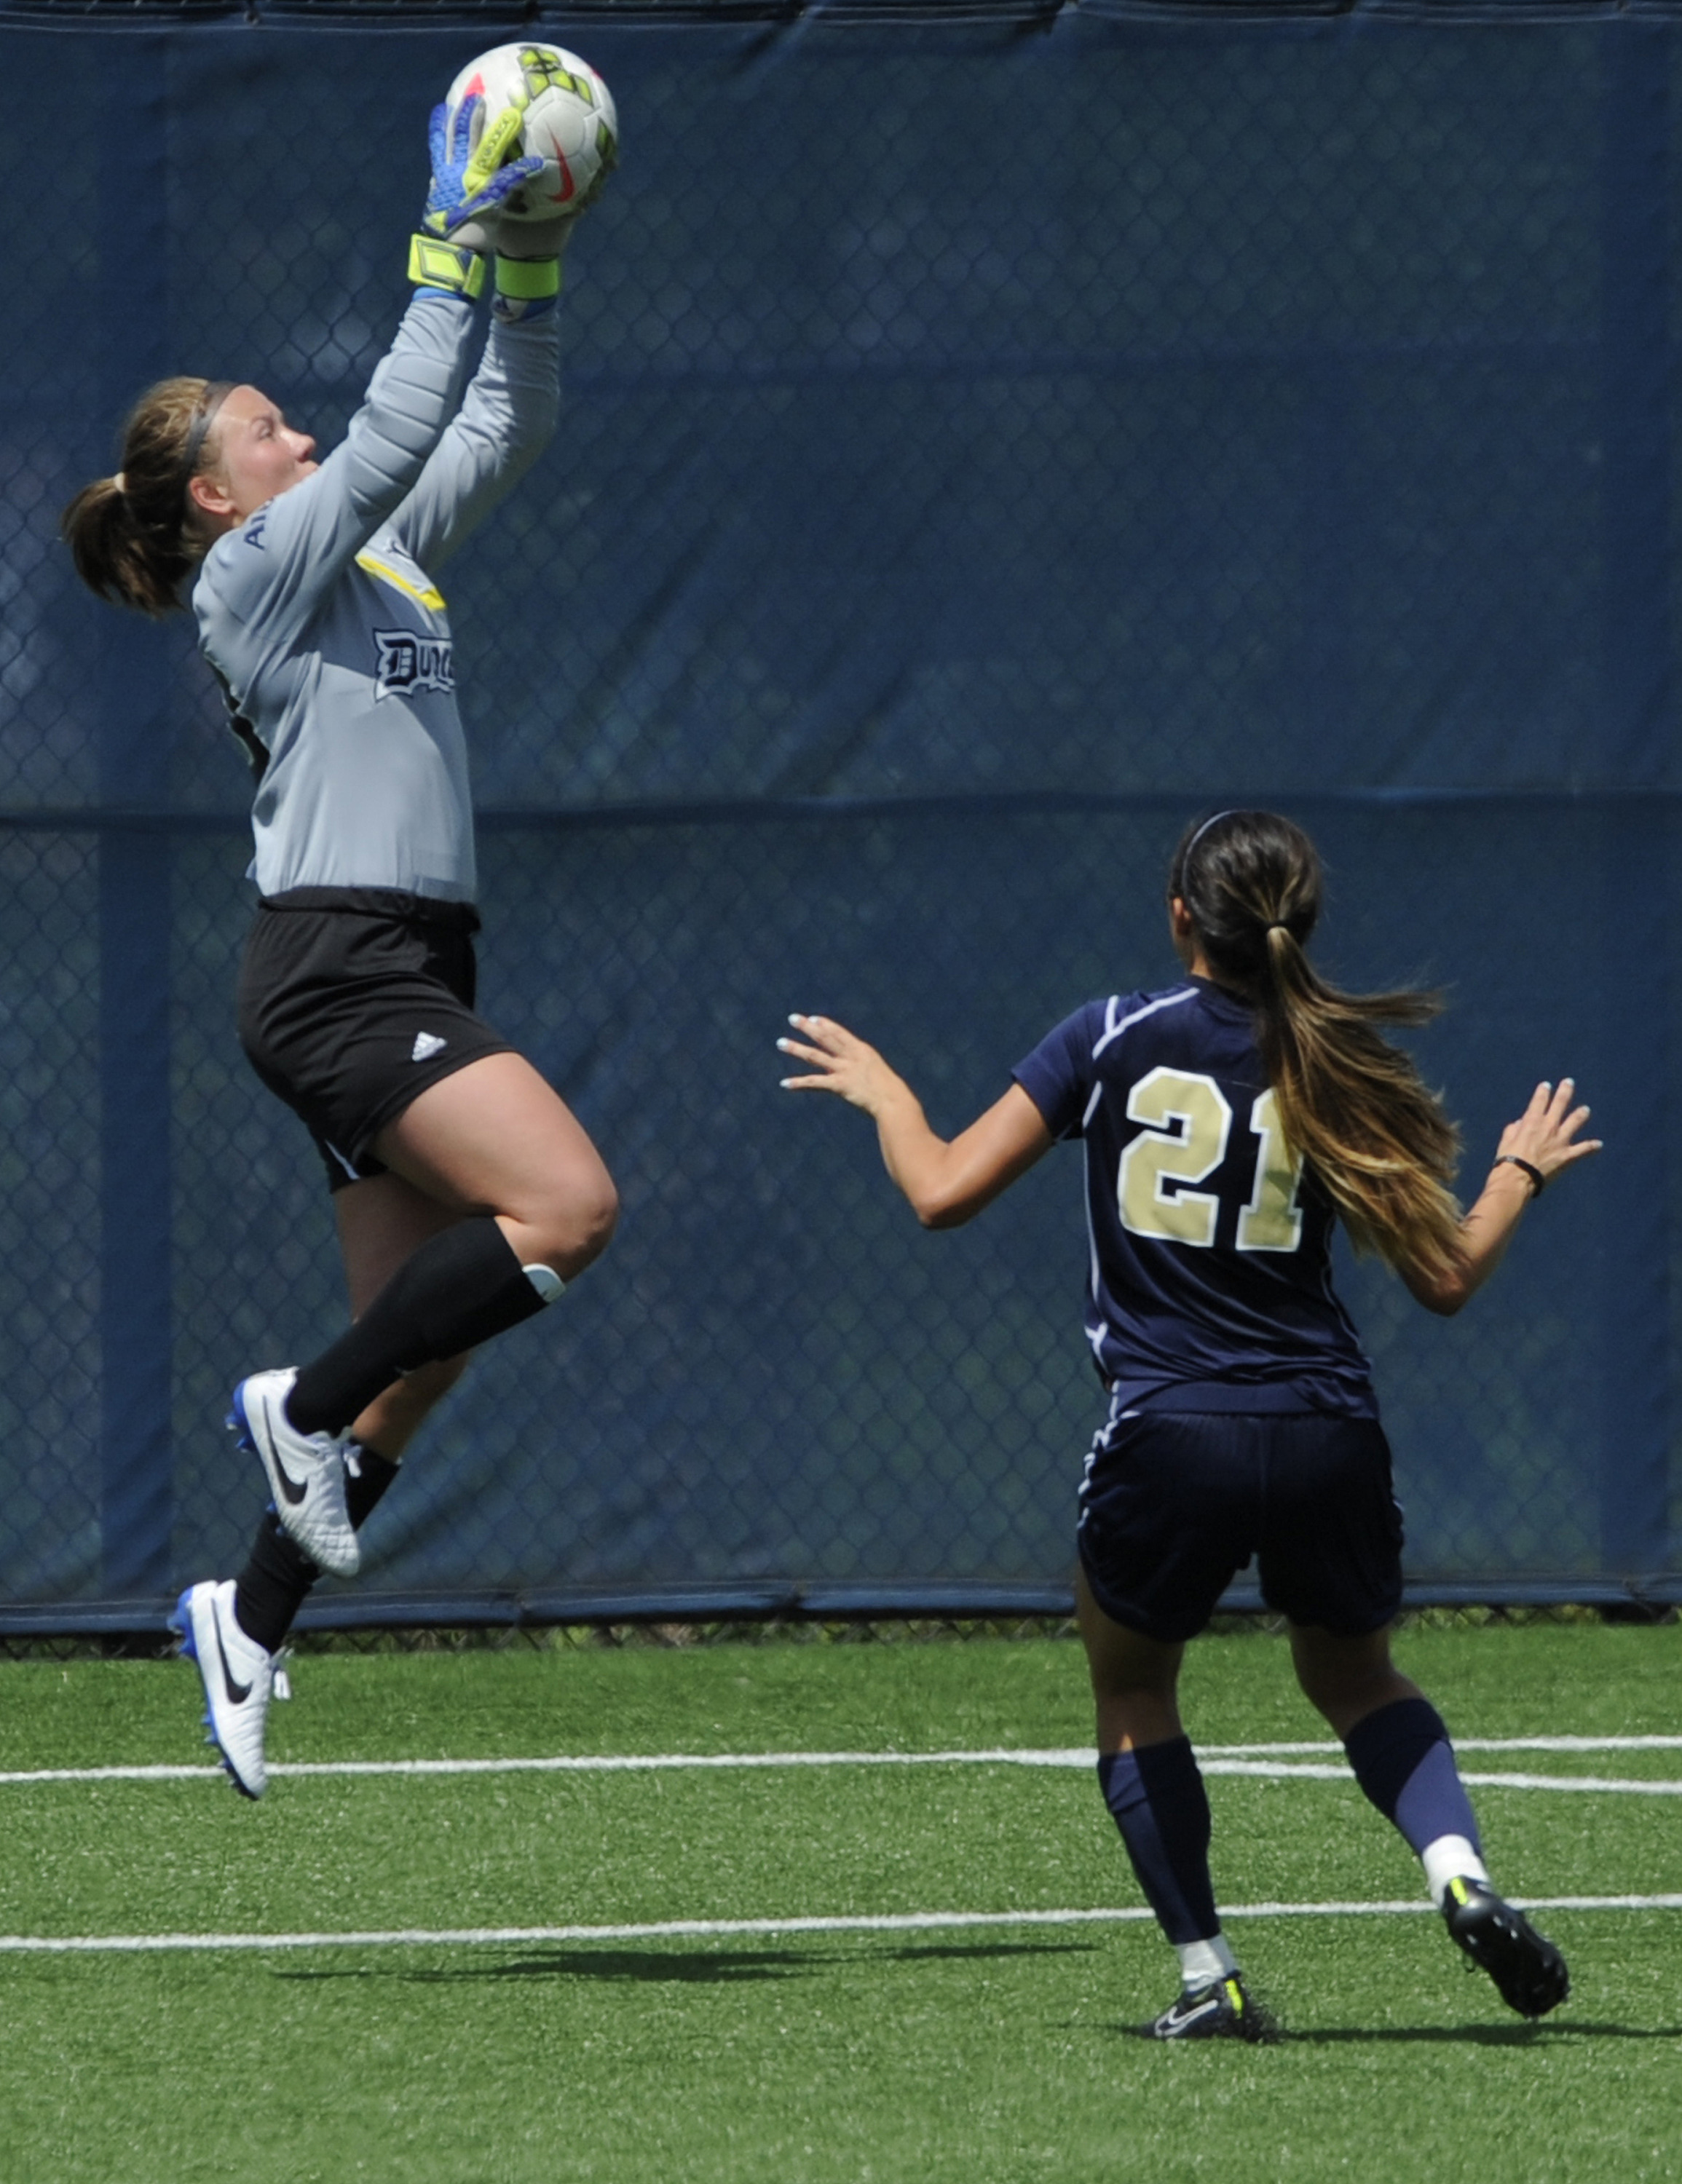 Devon Tabata finished the match with six saves.